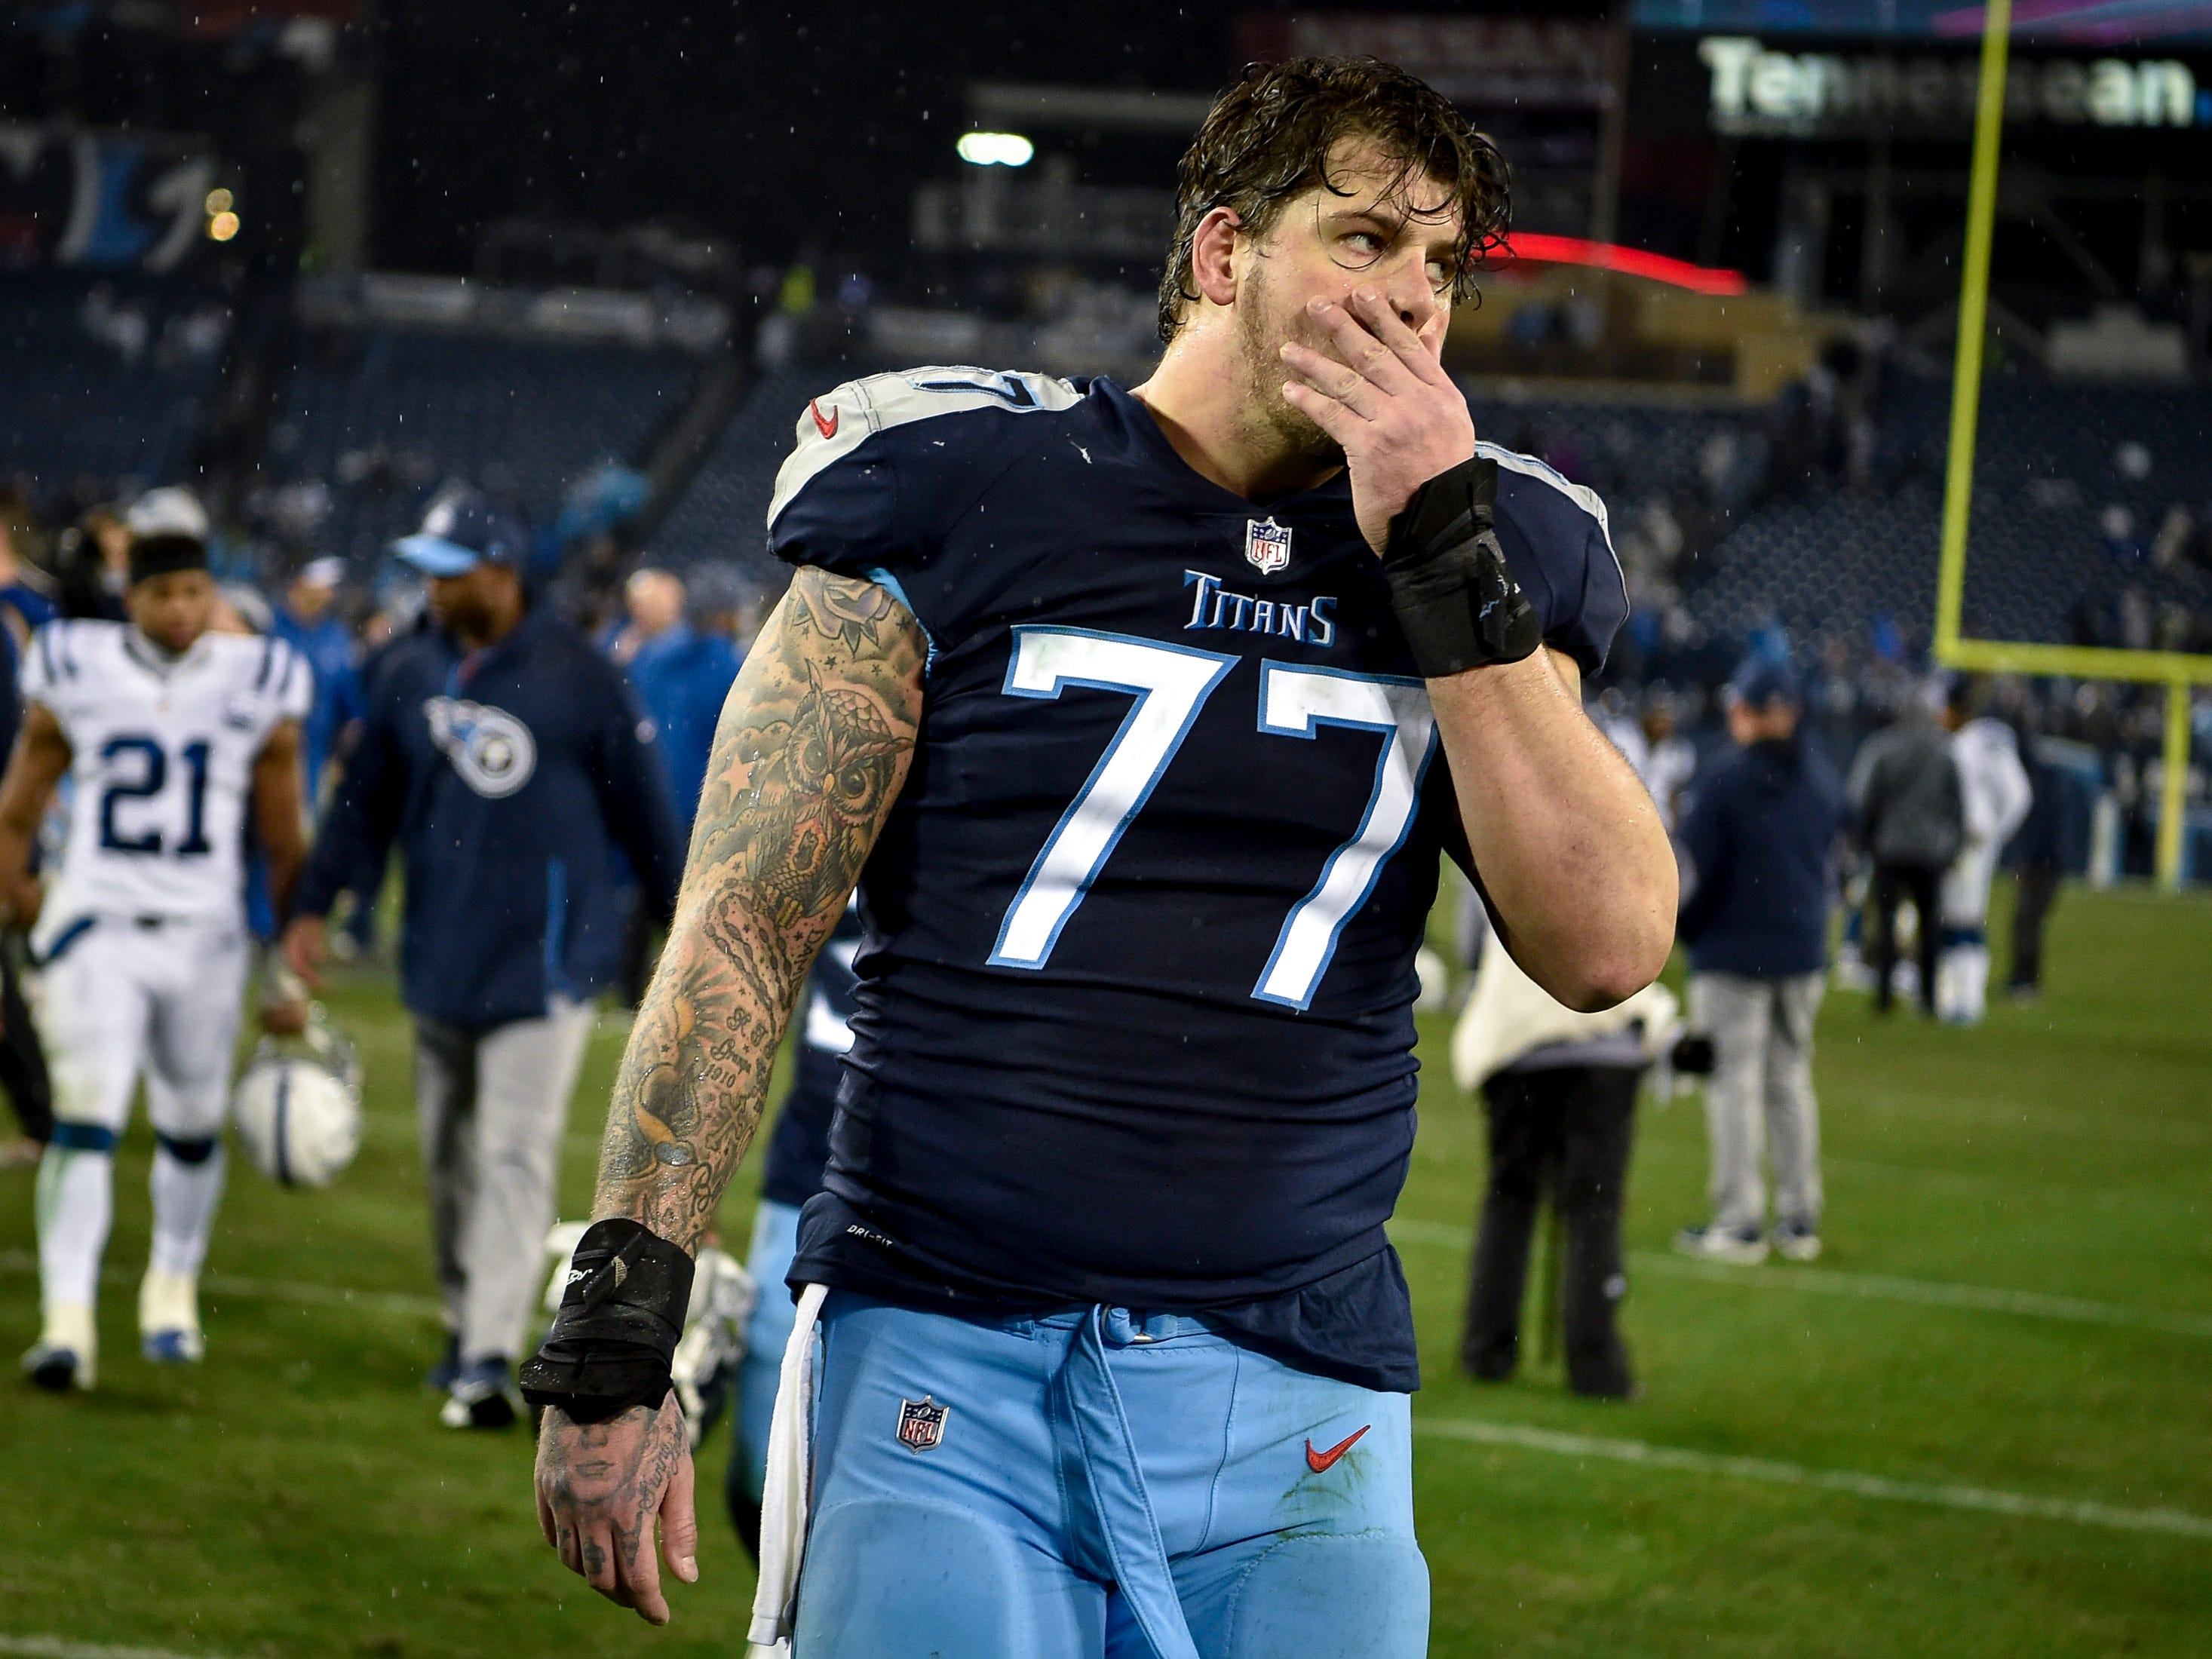 Tennessee Titans offensive tackle Taylor Lewan (77) walks off the field after their loss to the Indianapolis Colts at Nissan Stadium in Nashville, Tenn., Sunday, Dec. 30, 2018.